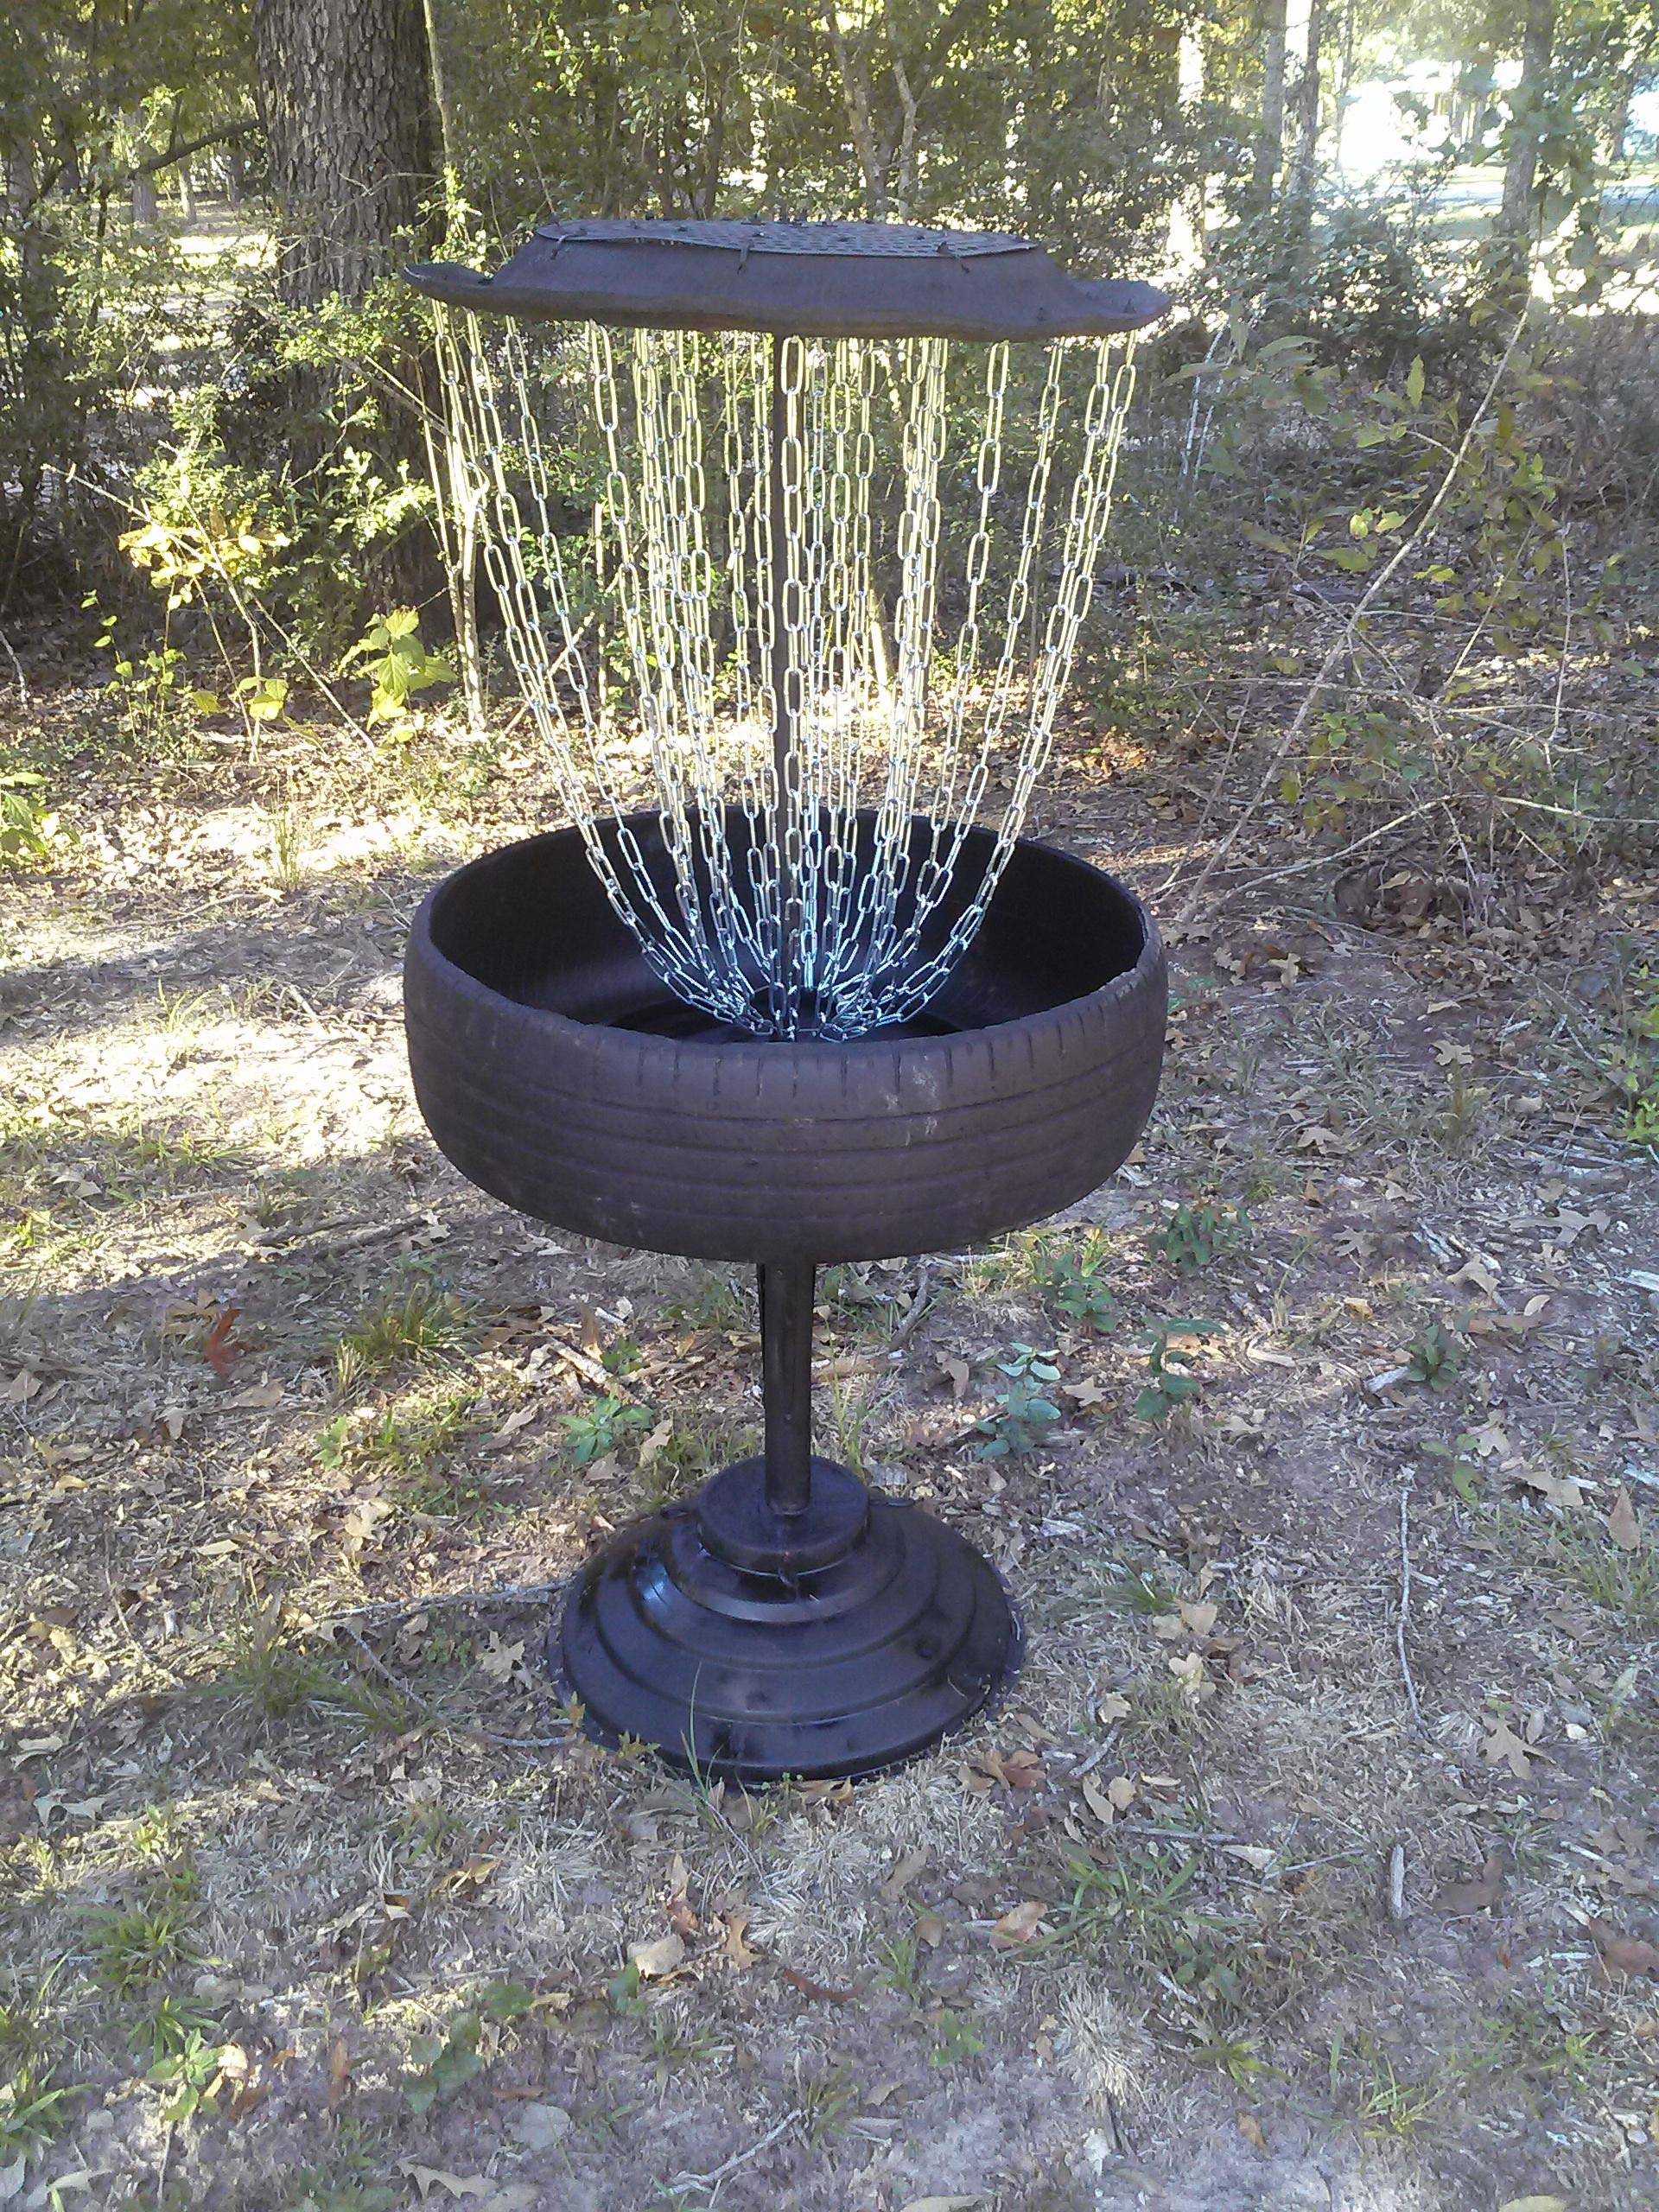 Best ideas about DIY Disc Golf Basket . Save or Pin homemade disc golf basket Album on Imgur Now.